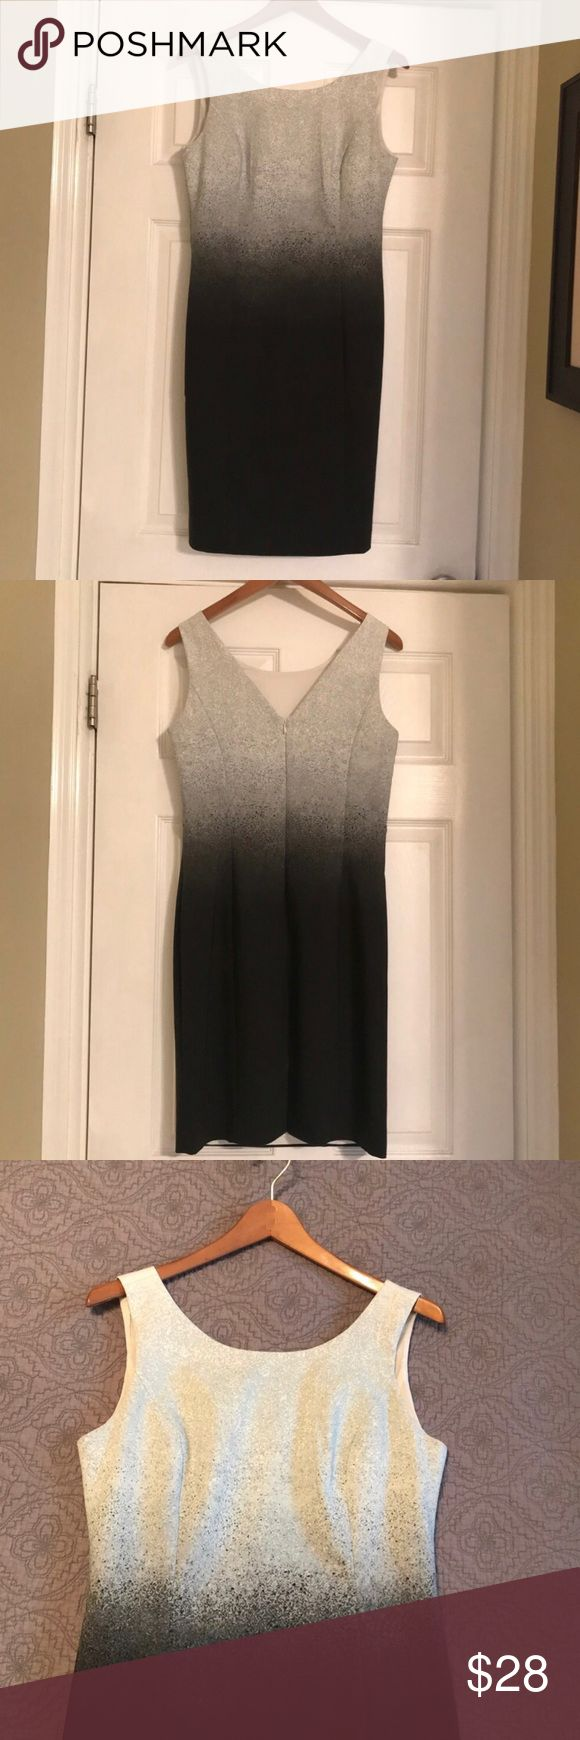 """♥️Super cute BANANA REPUBLIC Dress size 6 ♥️ Super cute sleeveless Banana Republic dress in size 6. Excellent condition. Second to last pic is just to give you a close up of the pattern. Dress is white, gray, and black. Has round neck and V cut in the back. Very flattering!! It has a hidden zipper up the back and is fully lined. Doesn't have any snags, tears, or pilling. Dress is 52% cotton, 45% polyester and 3% spandex. Measurements taken while lying flat: 17"""" bust, 15"""" waist, 18"""" hips, and…"""